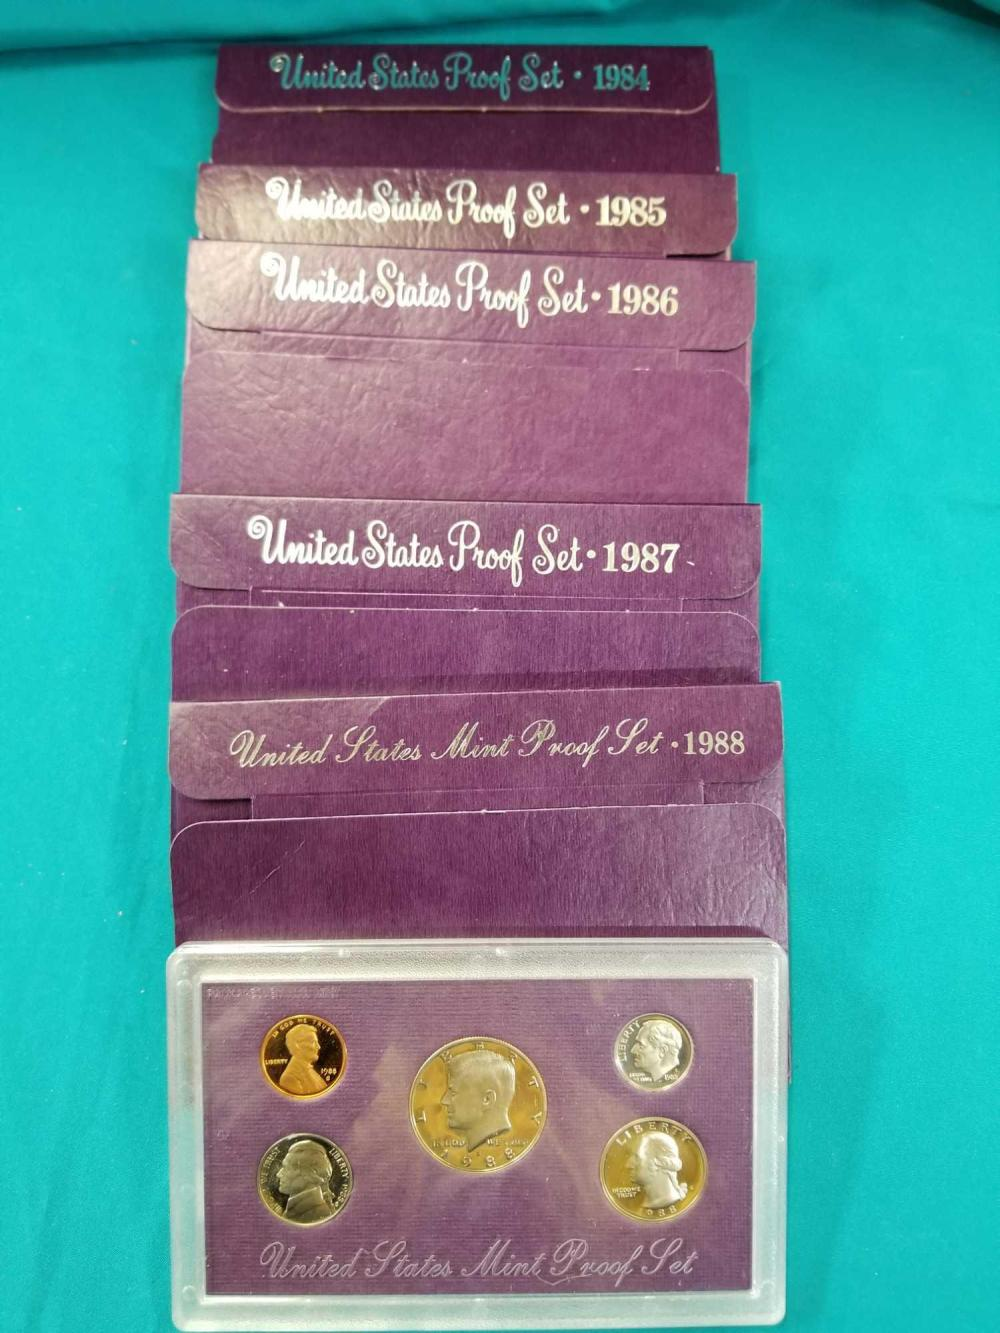 1984-1988 U.S. MINT PROOF COIN SETS - 5 ITEMS